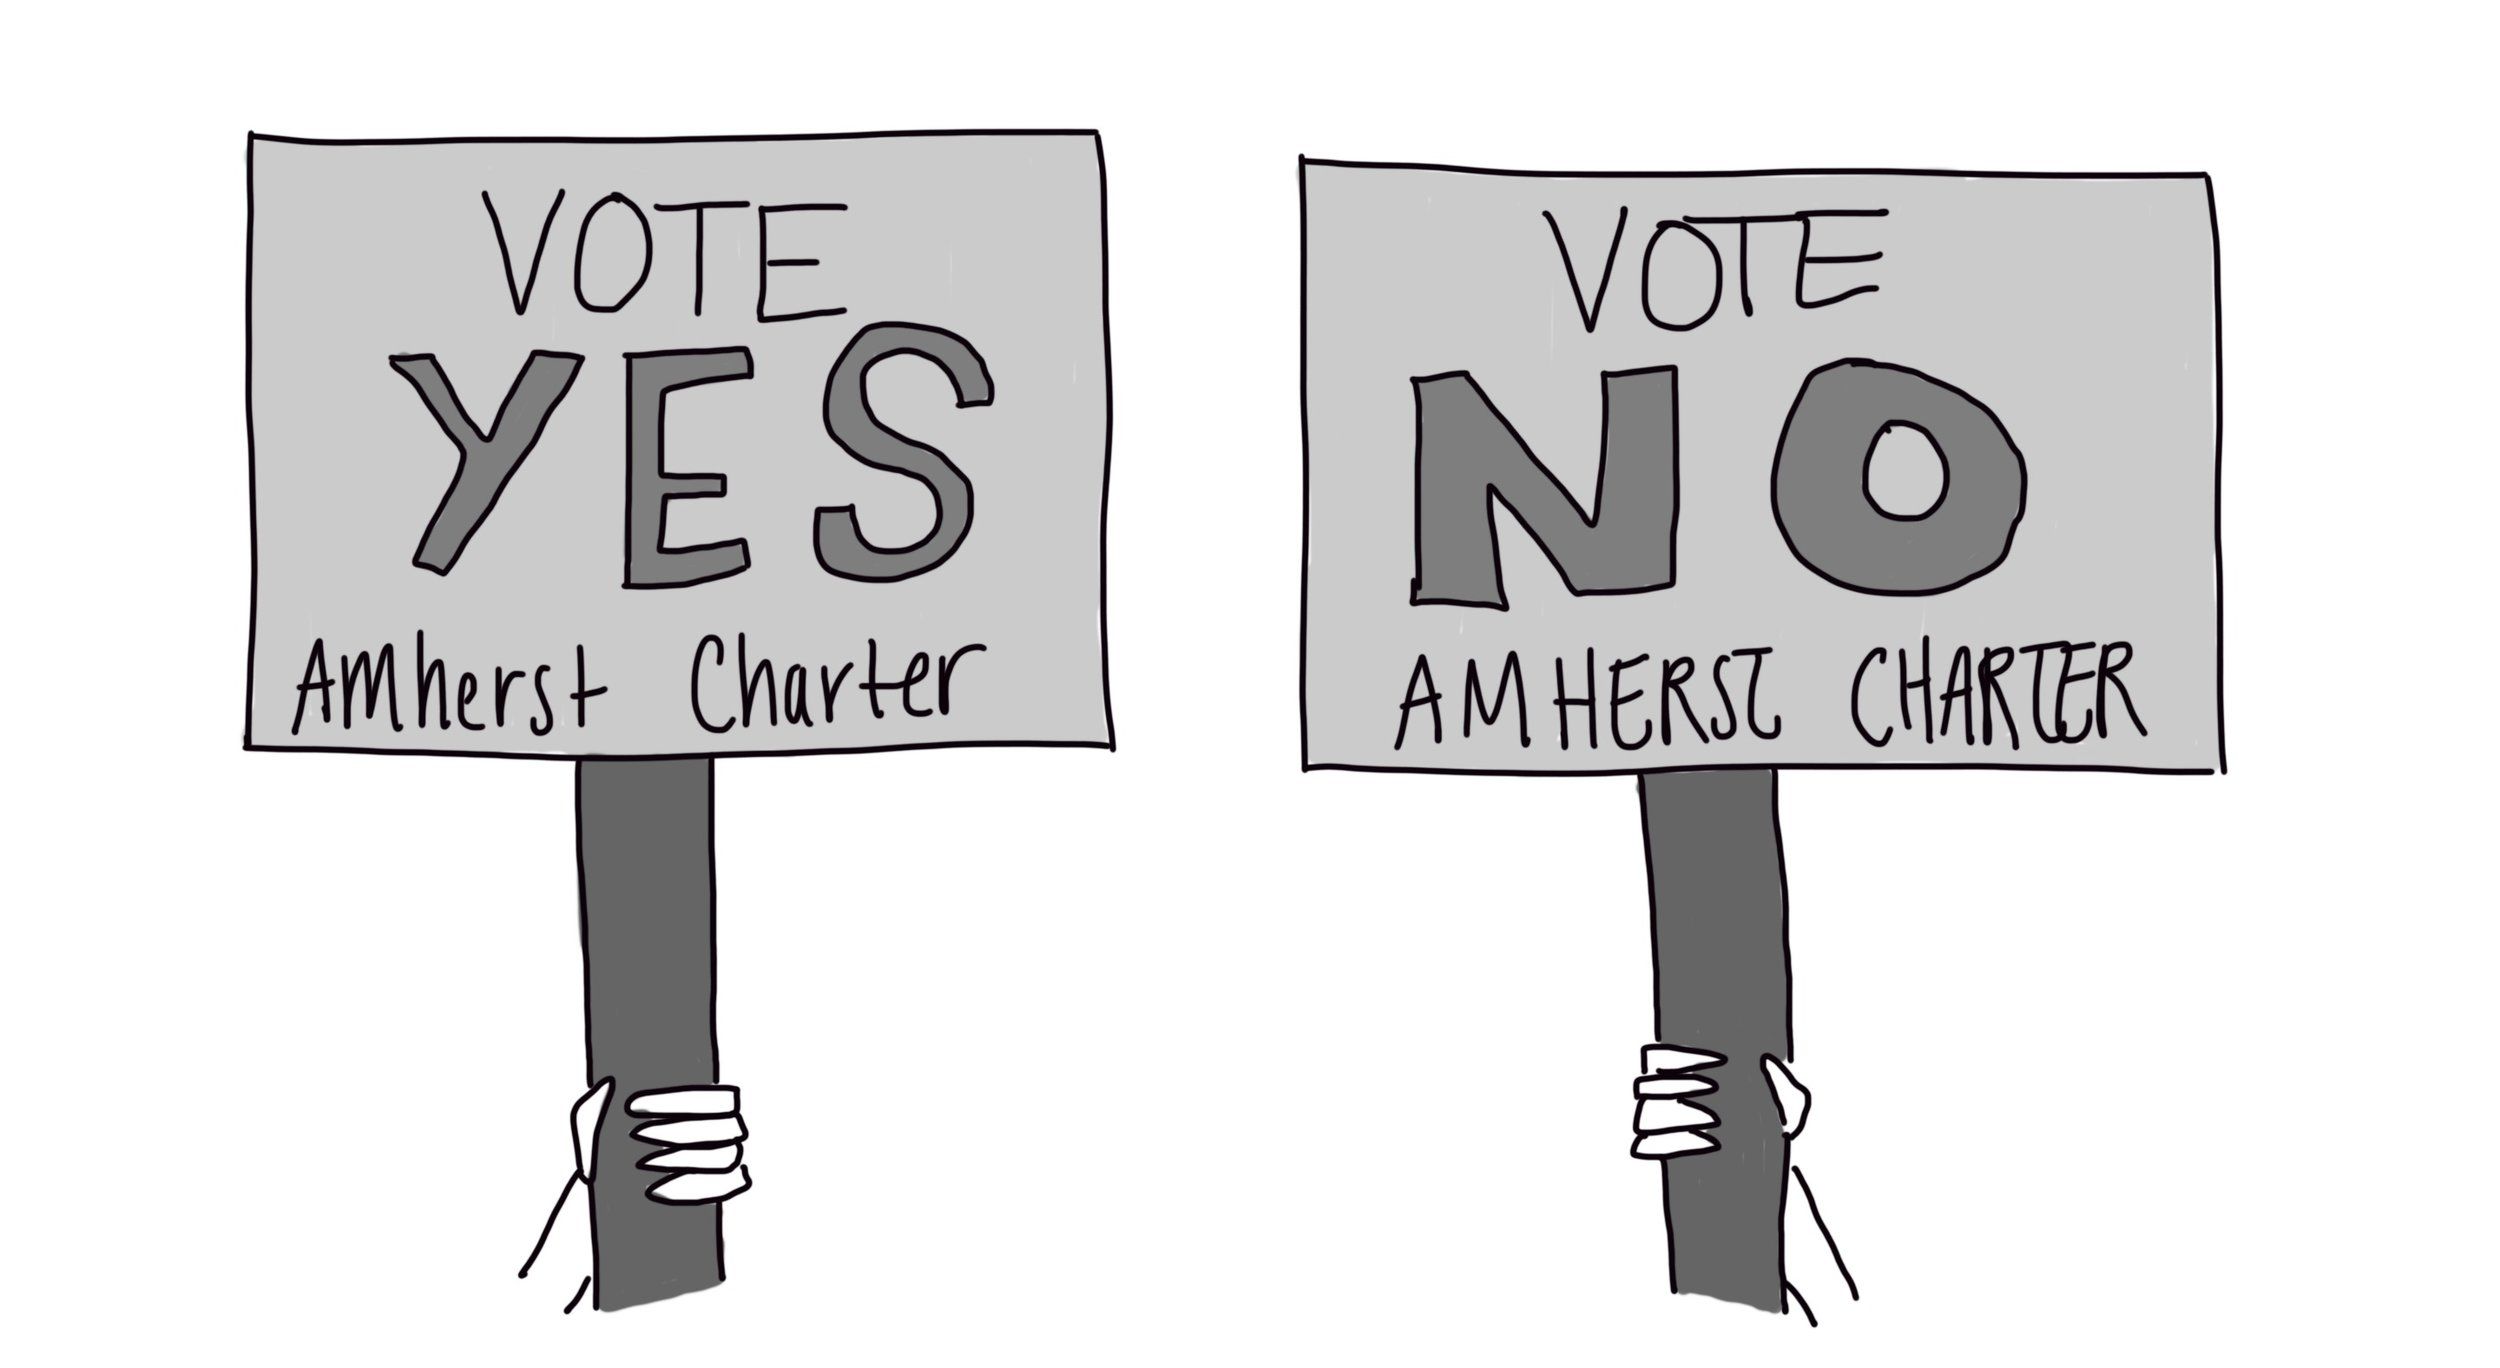 Town of Amherst votes to change their 1938 charter and